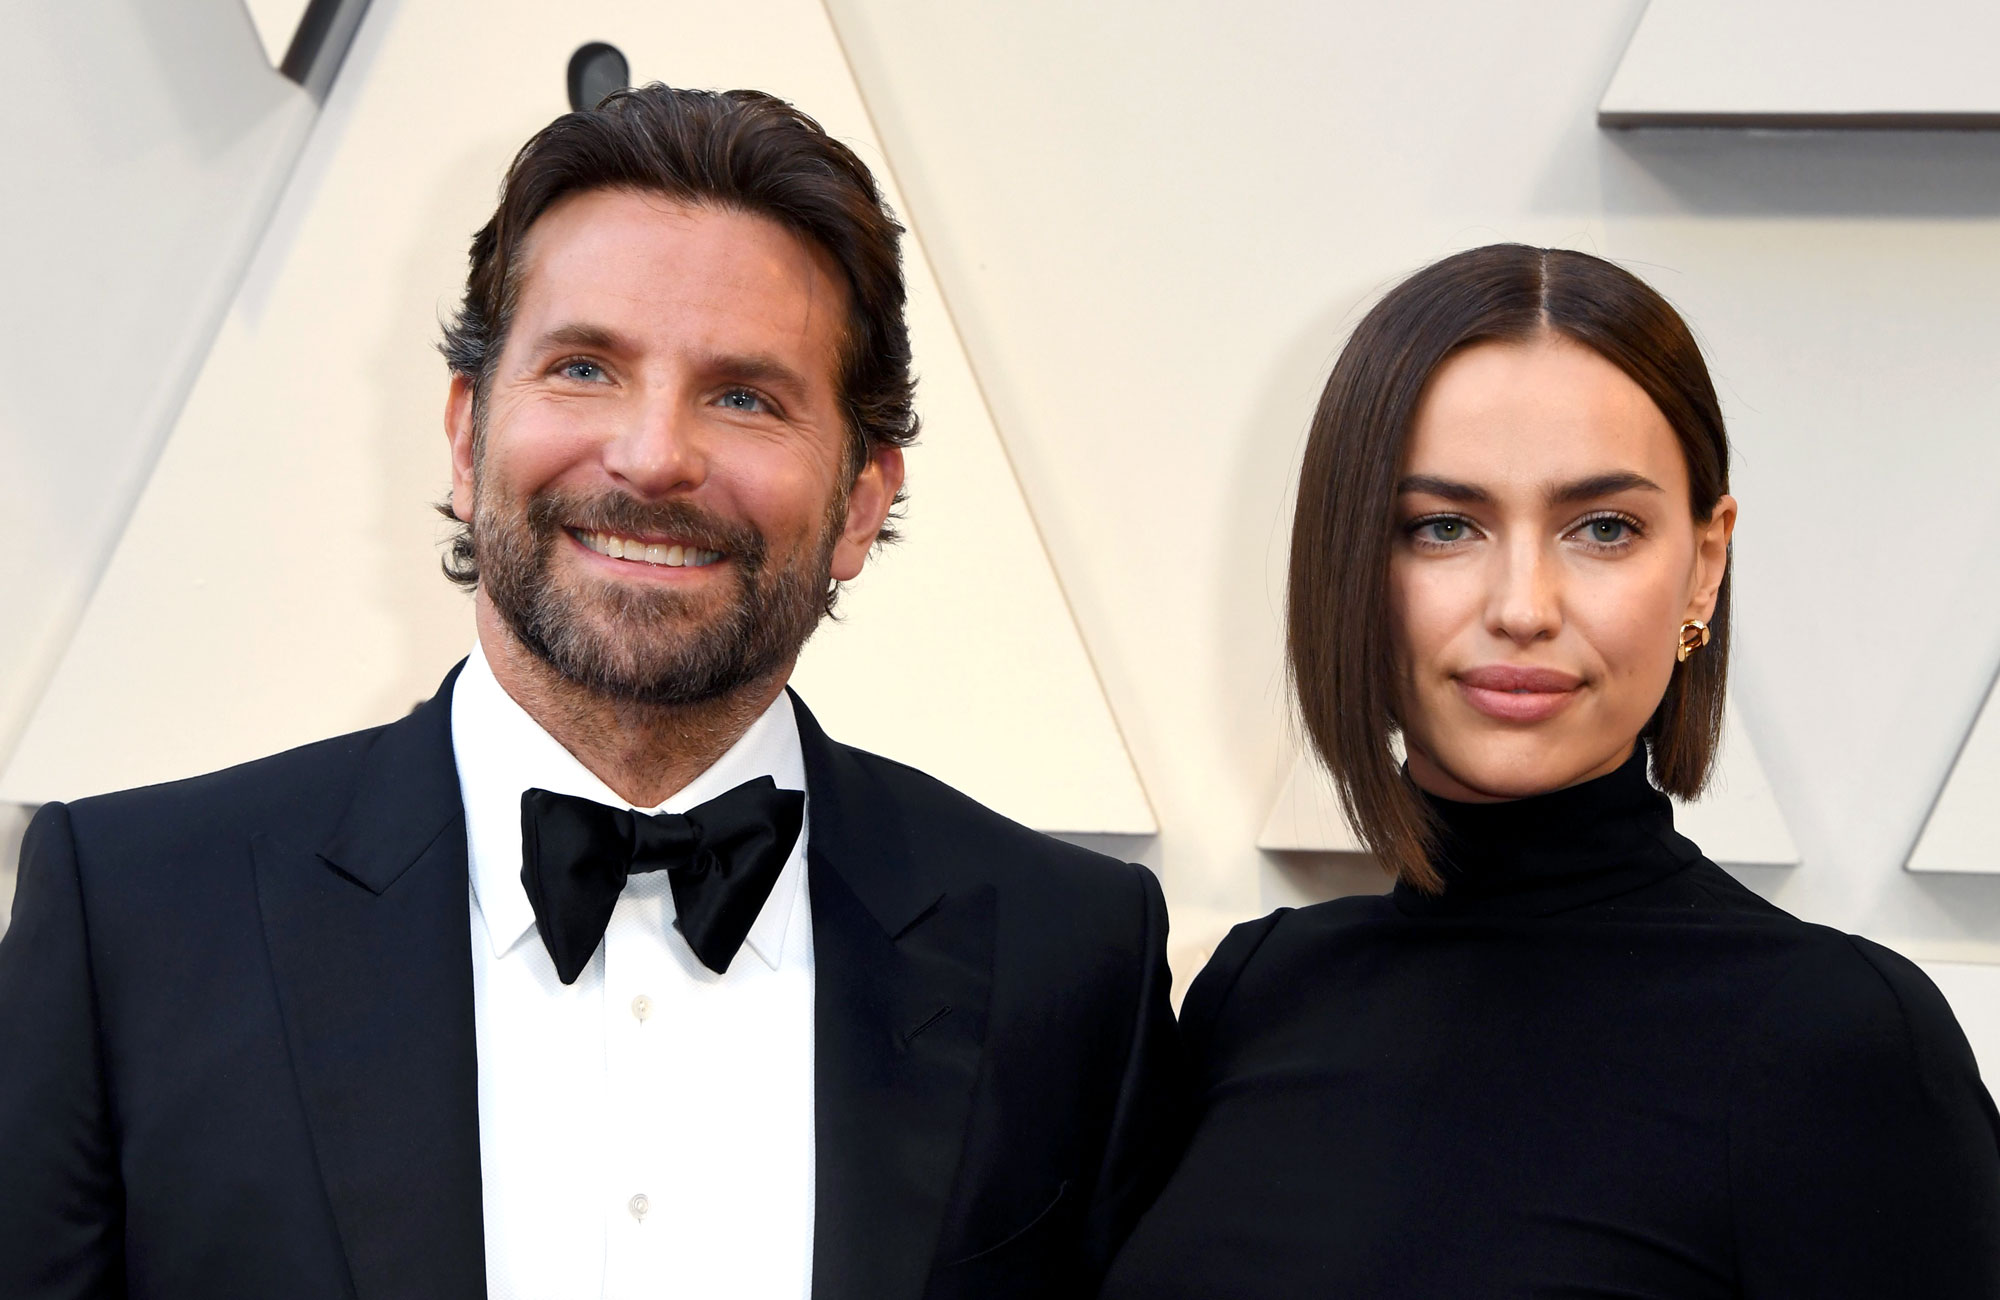 Bradley Cooper 'Wasn't Able to Be the Partner' Irina Shayk 'Needed' While Making 'A Star Is Born'